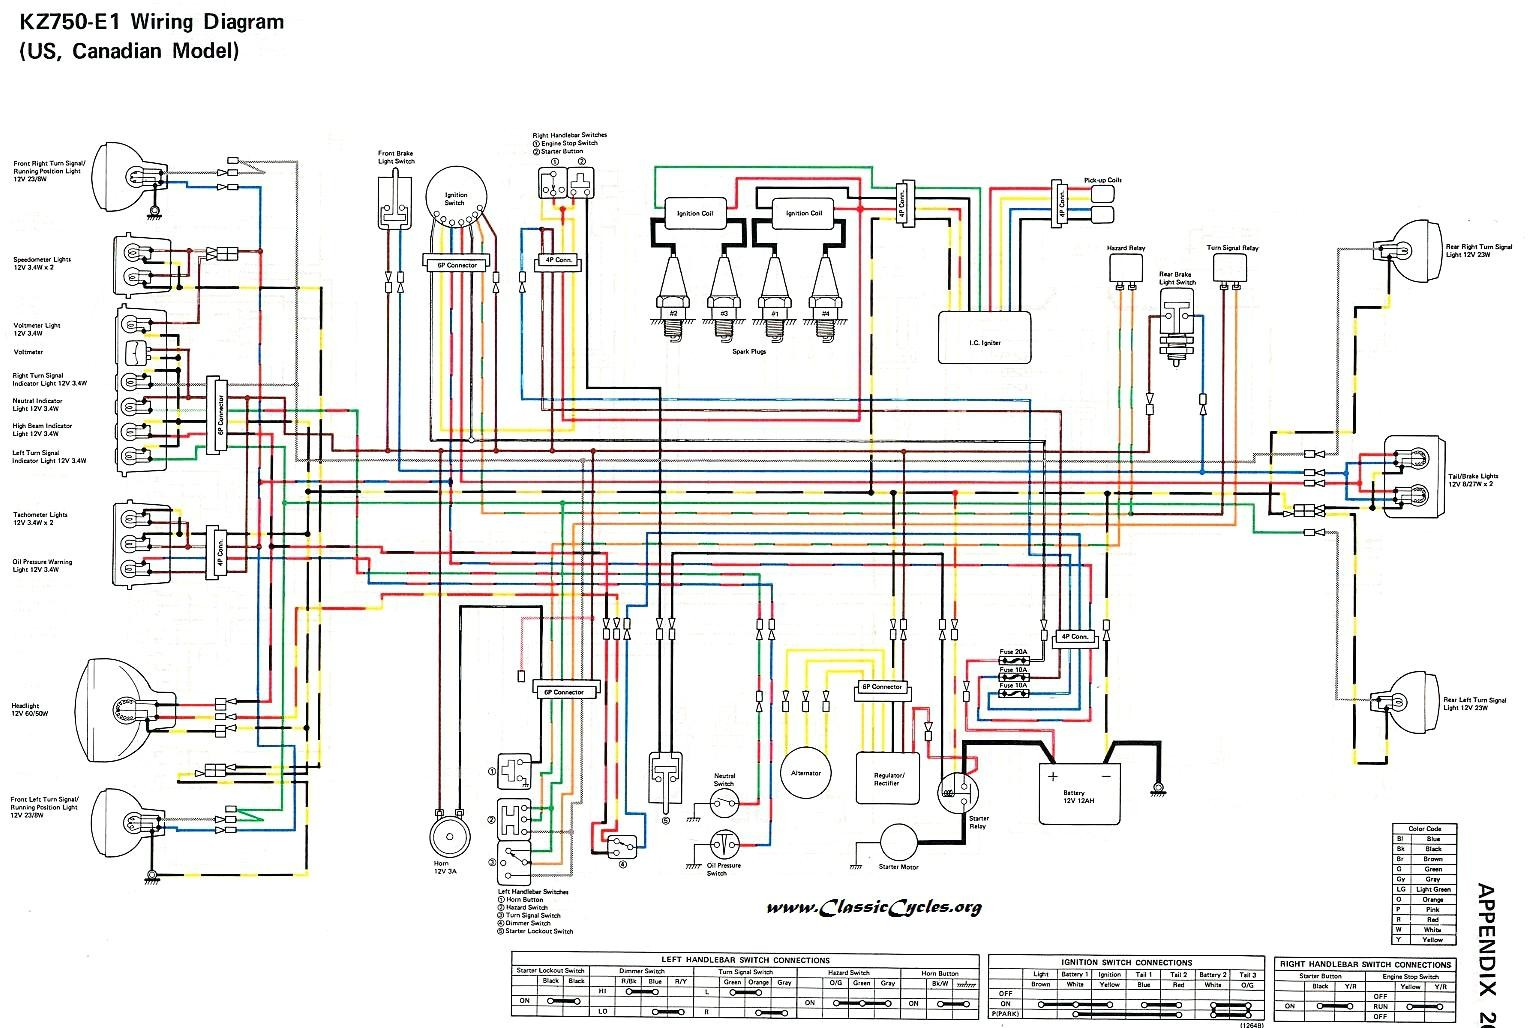 hight resolution of cb750 wiring diagram in addition puch wiring diagram honda mb5 rh 45 76 235 155 at